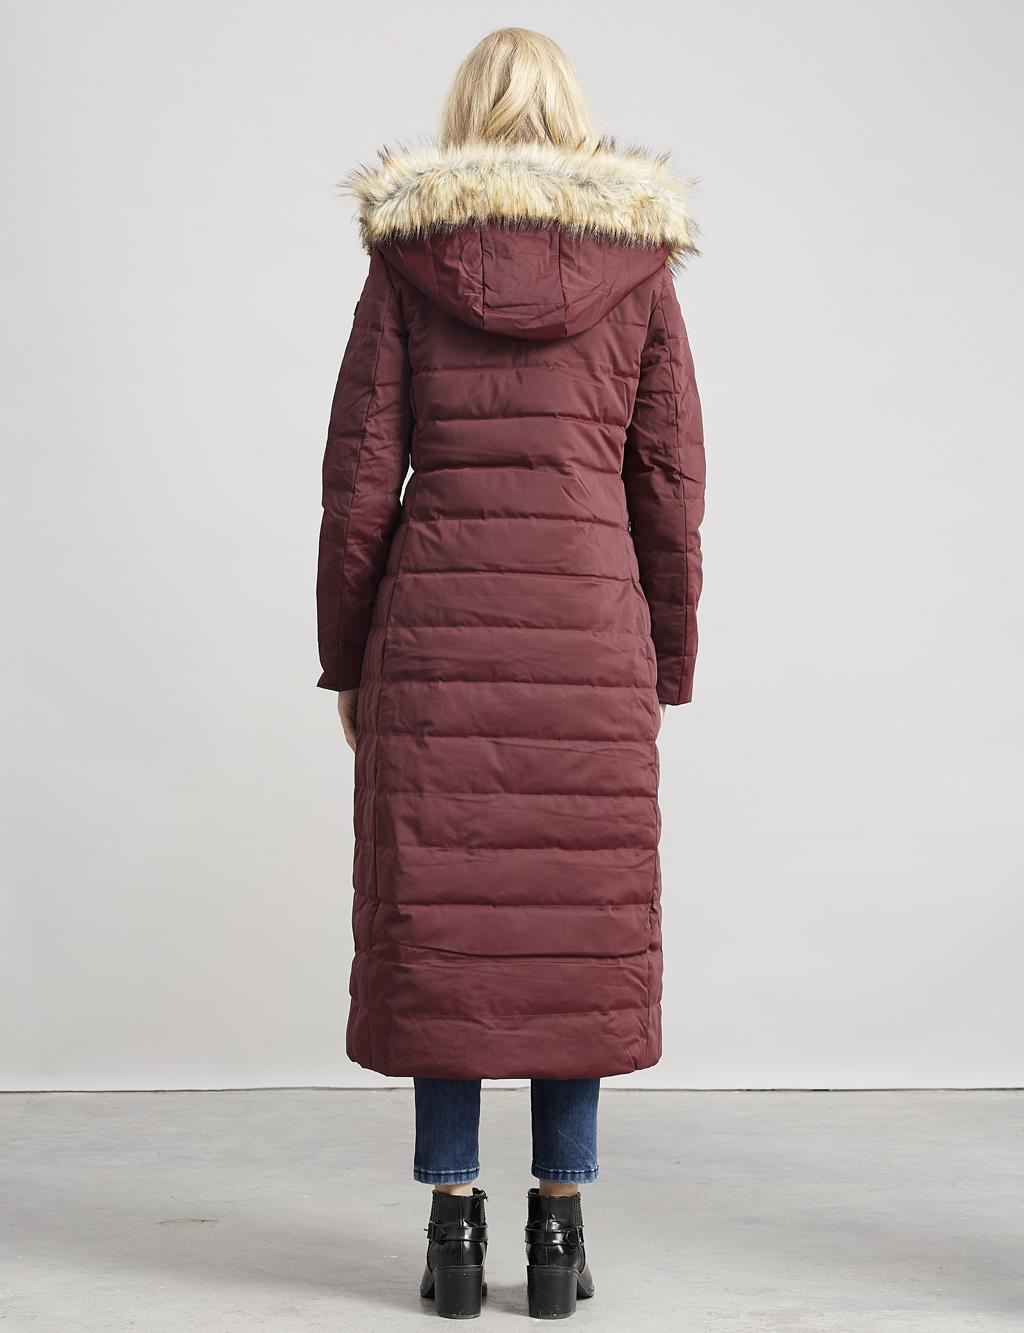 Goose-Quill Coat With Leather Burgundy A7 27004